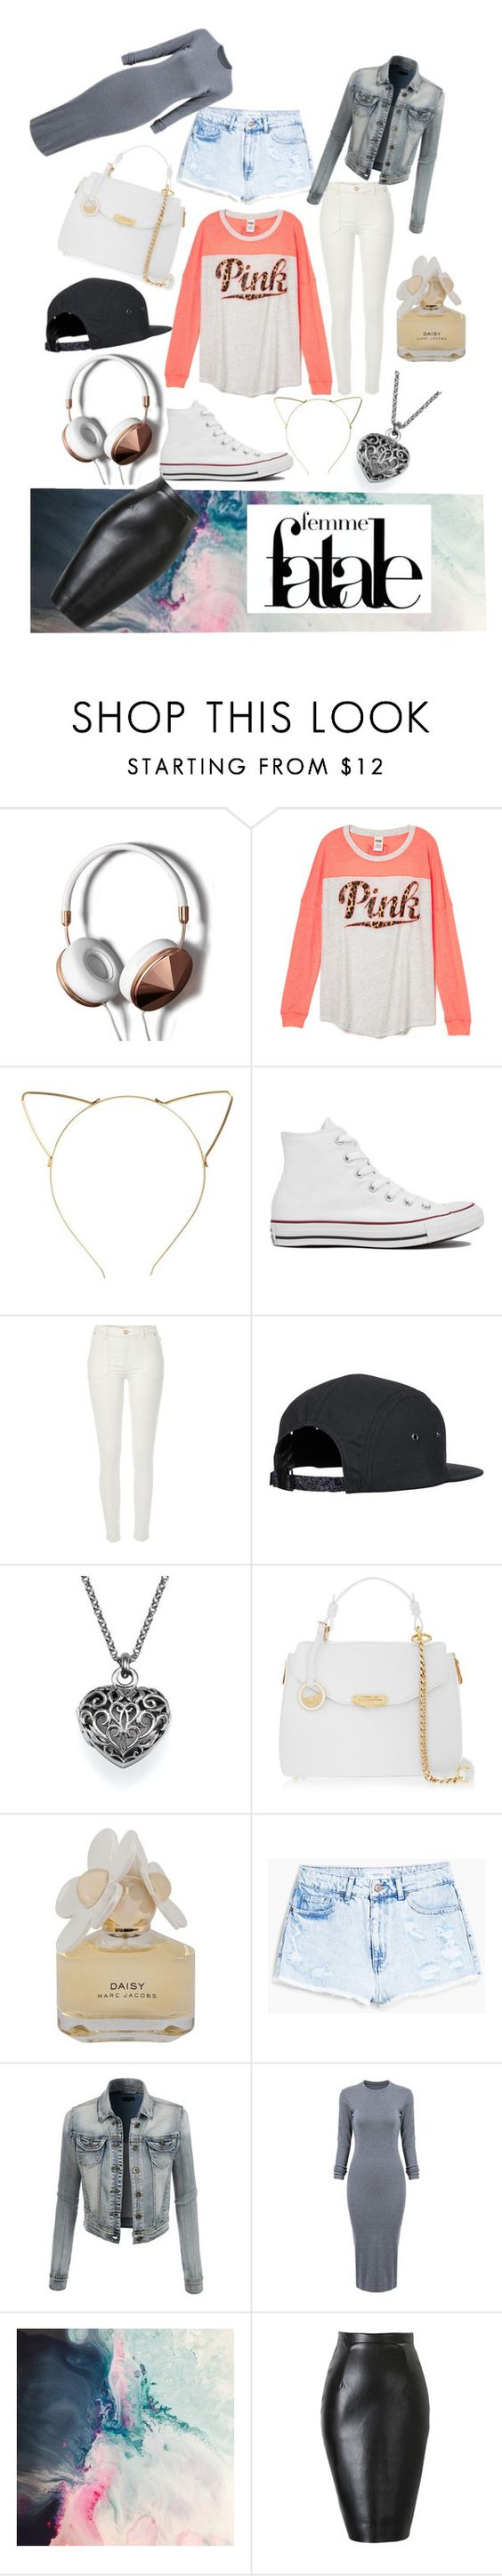 """""""The essentials (to busy to make a good one sorry lol)"""" by lltakeachancell ❤ liked on Polyvore featuring Abercrombie & Fitch, BP., Converse, River Island, Versace, Marc by Marc Jacobs, MANGO and LE3NO"""